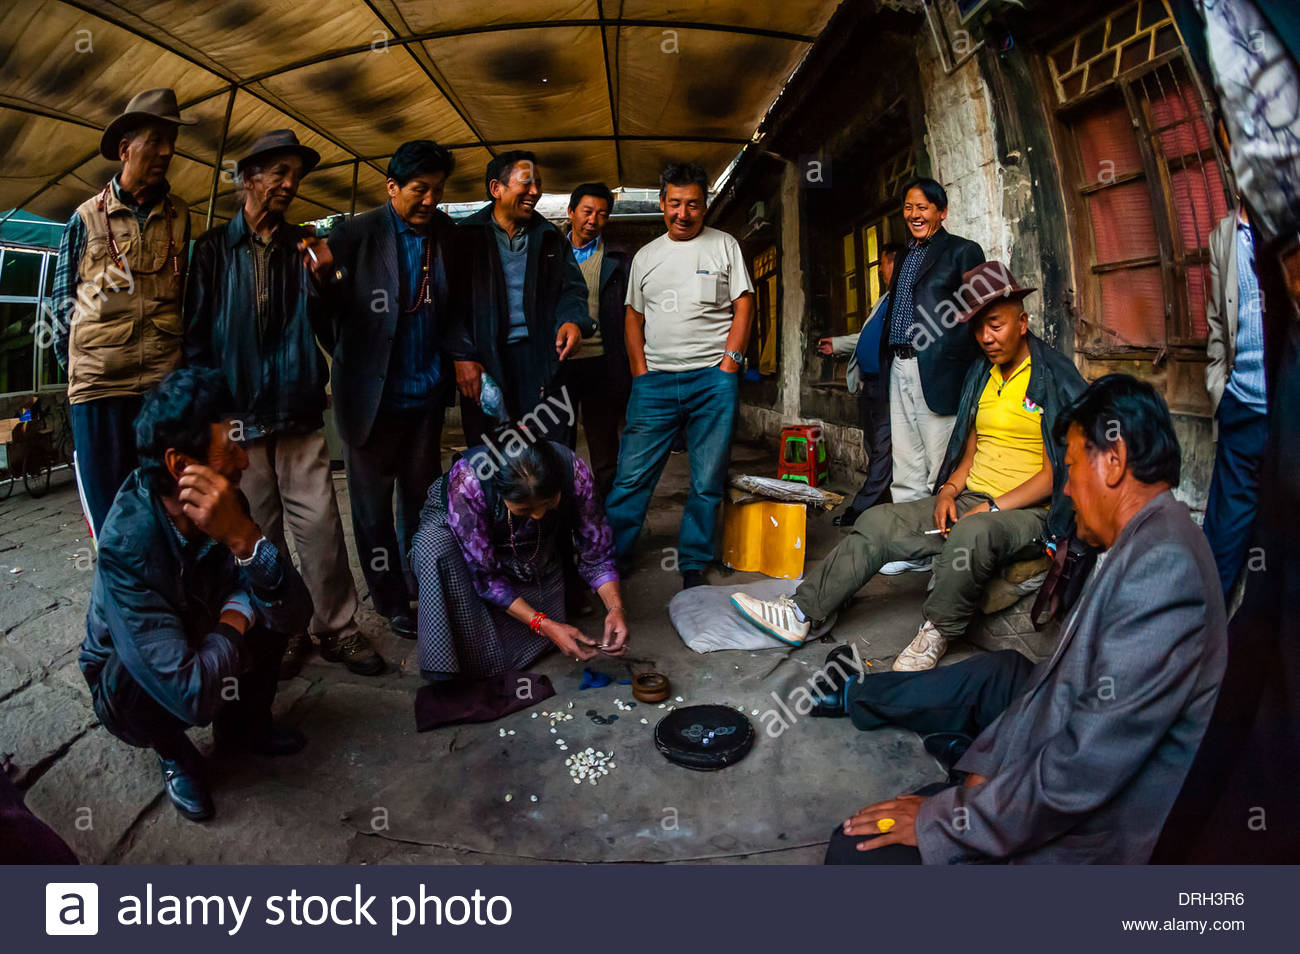 People gambling on a back street in Old Lhasa, Tibet (Xizang), China. - Stock Image